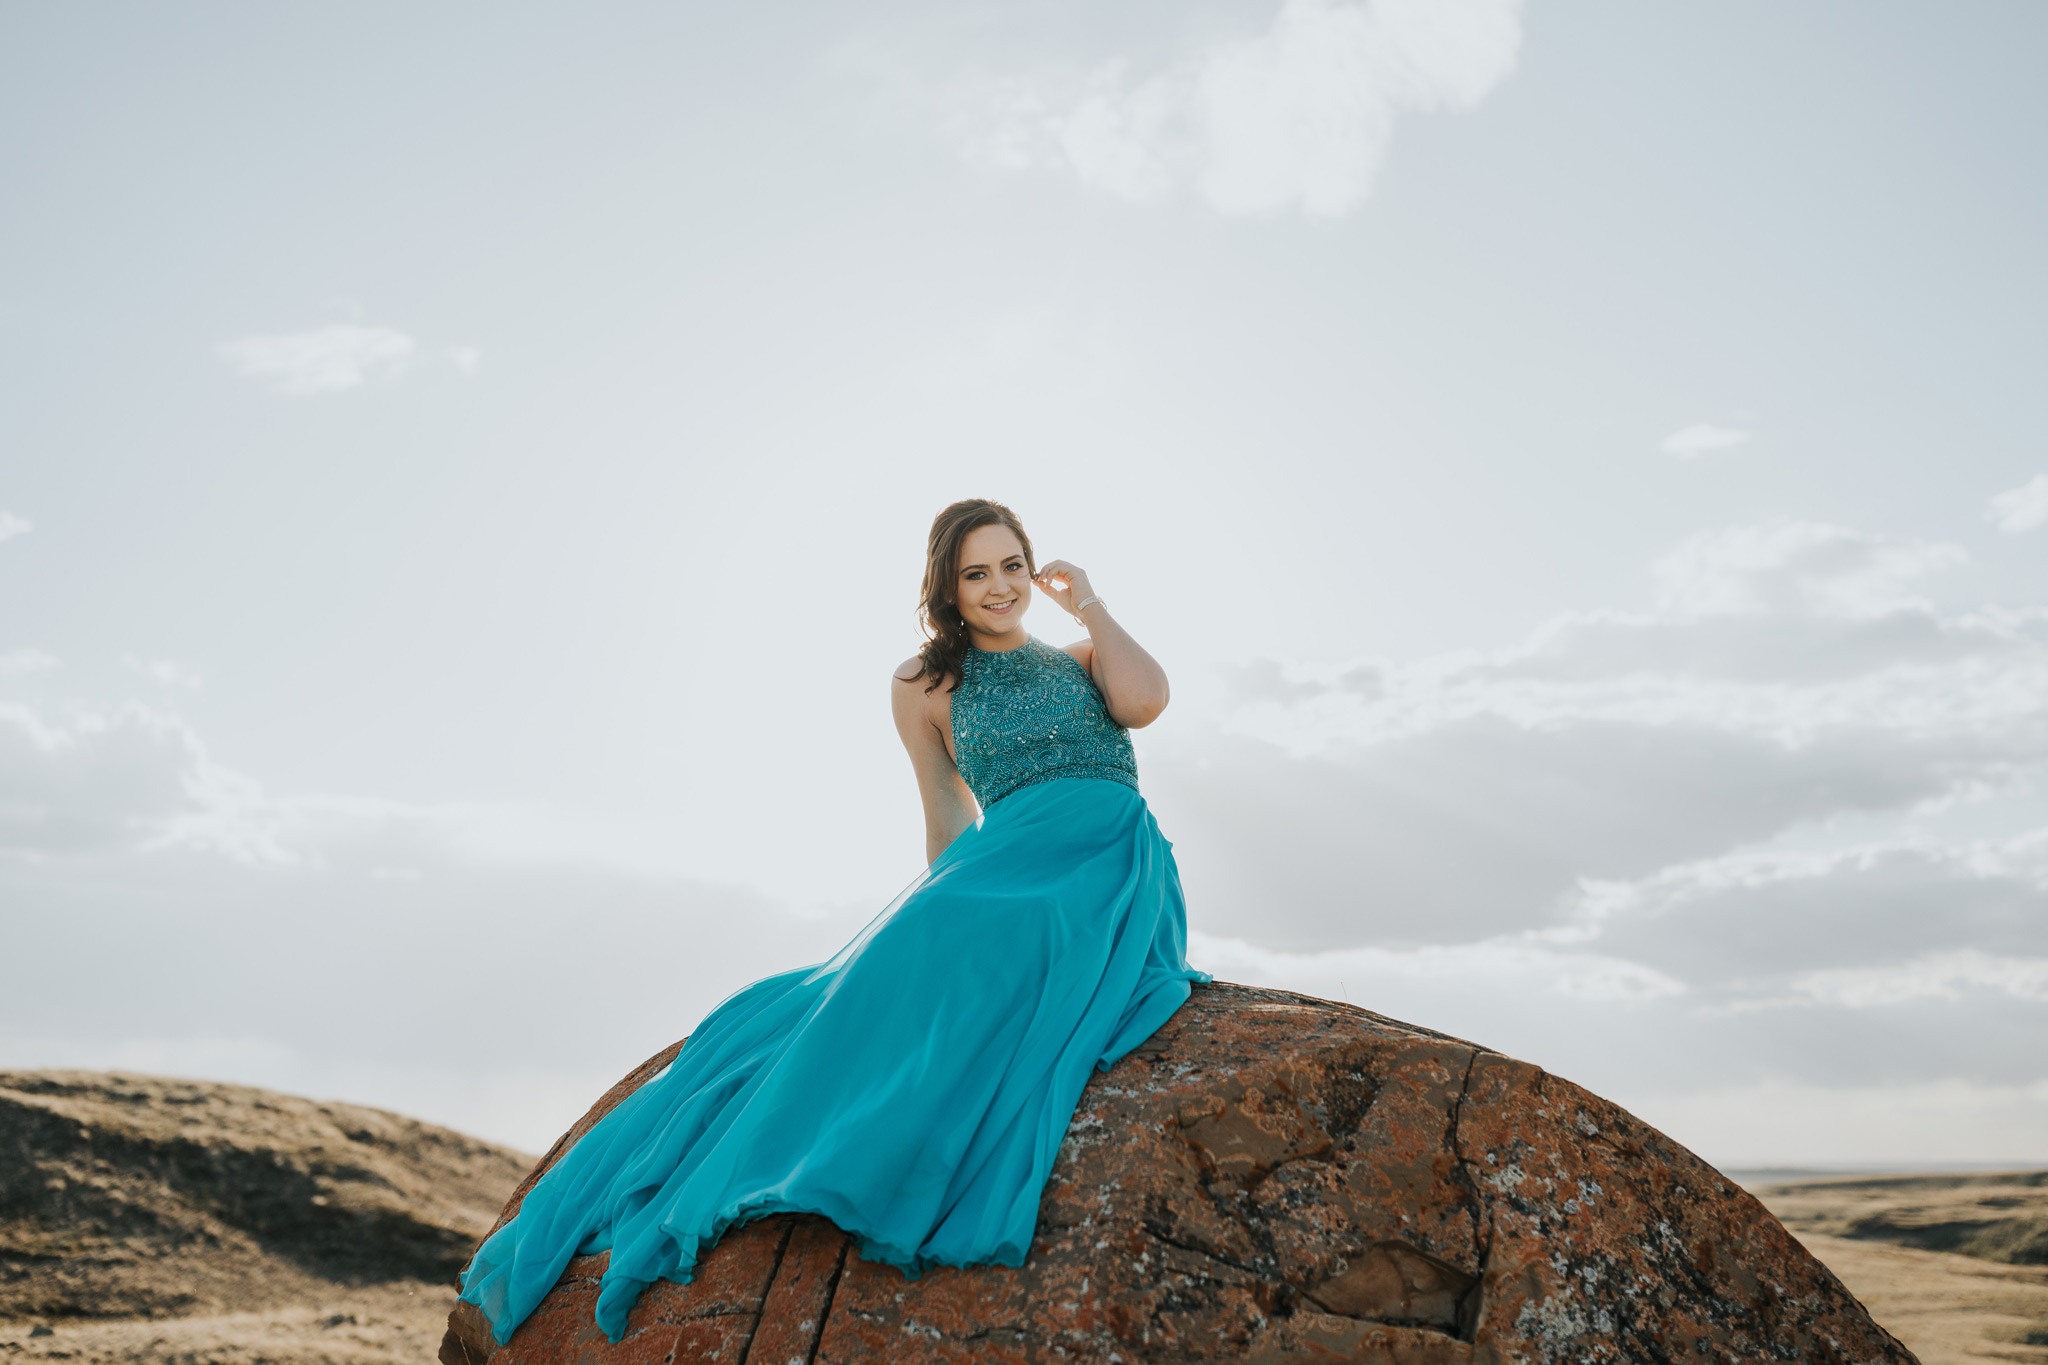 girl in prom dress sitting on large rock smiling